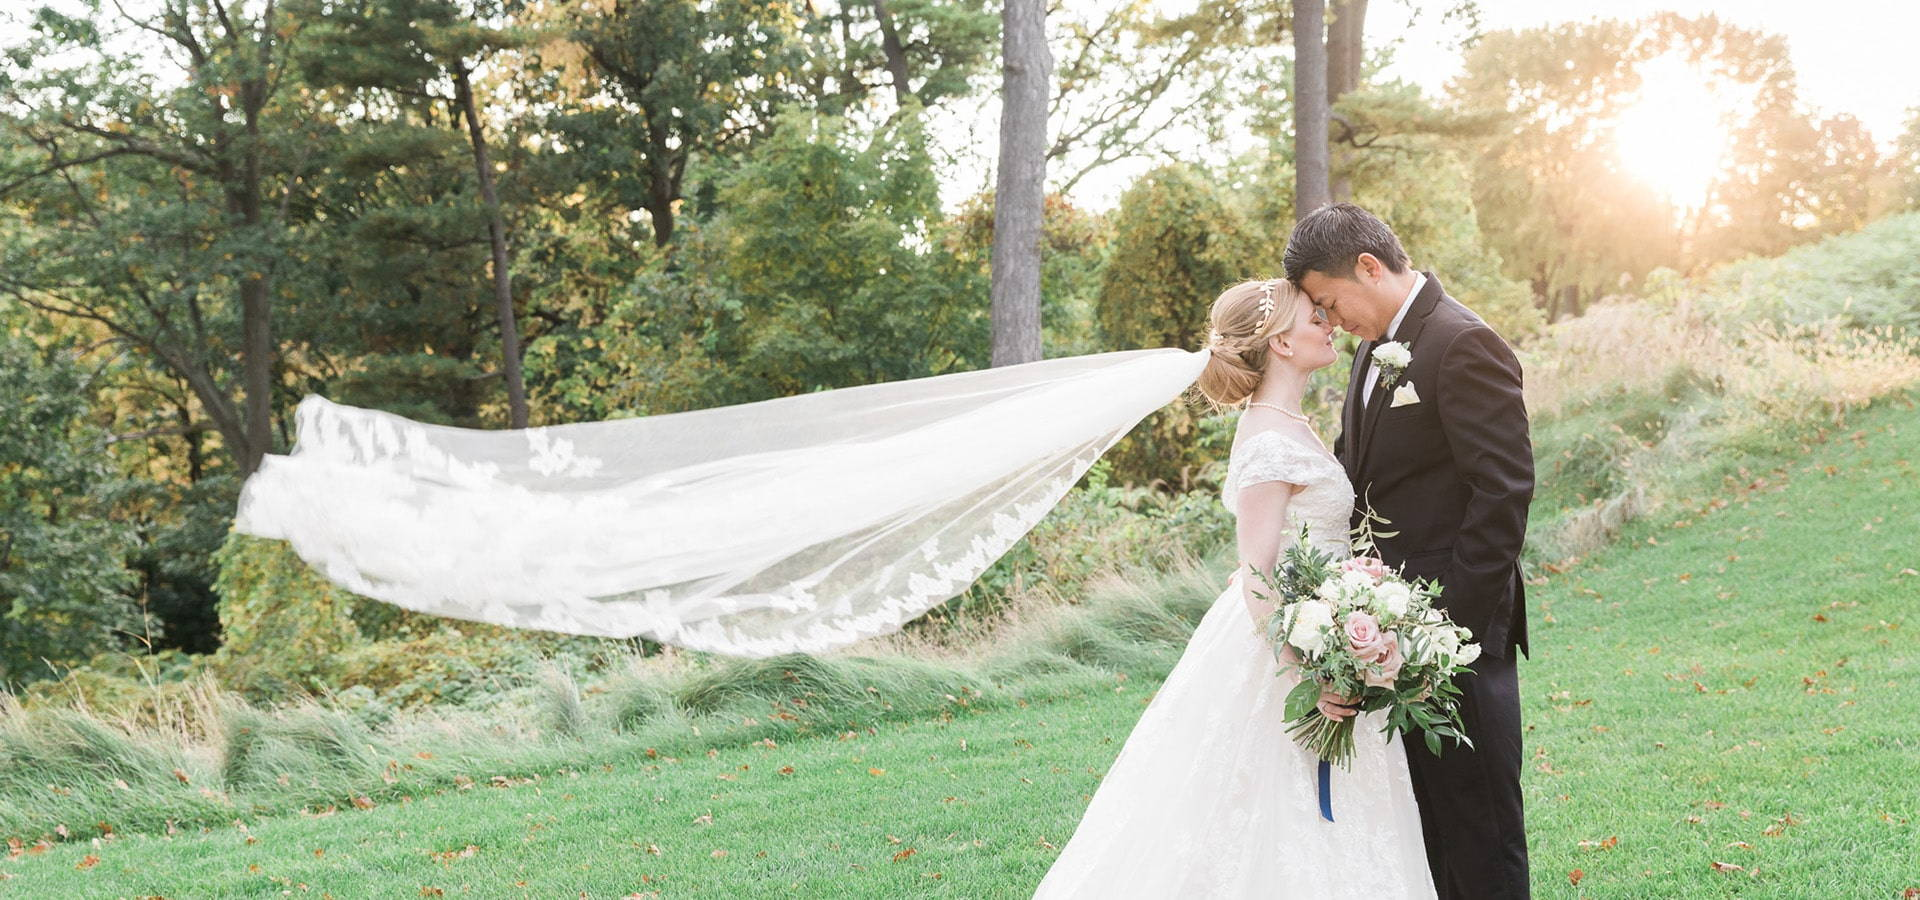 Hero image for Caitlin and Steven's Fall Wedding at Credit Valley Golf Course